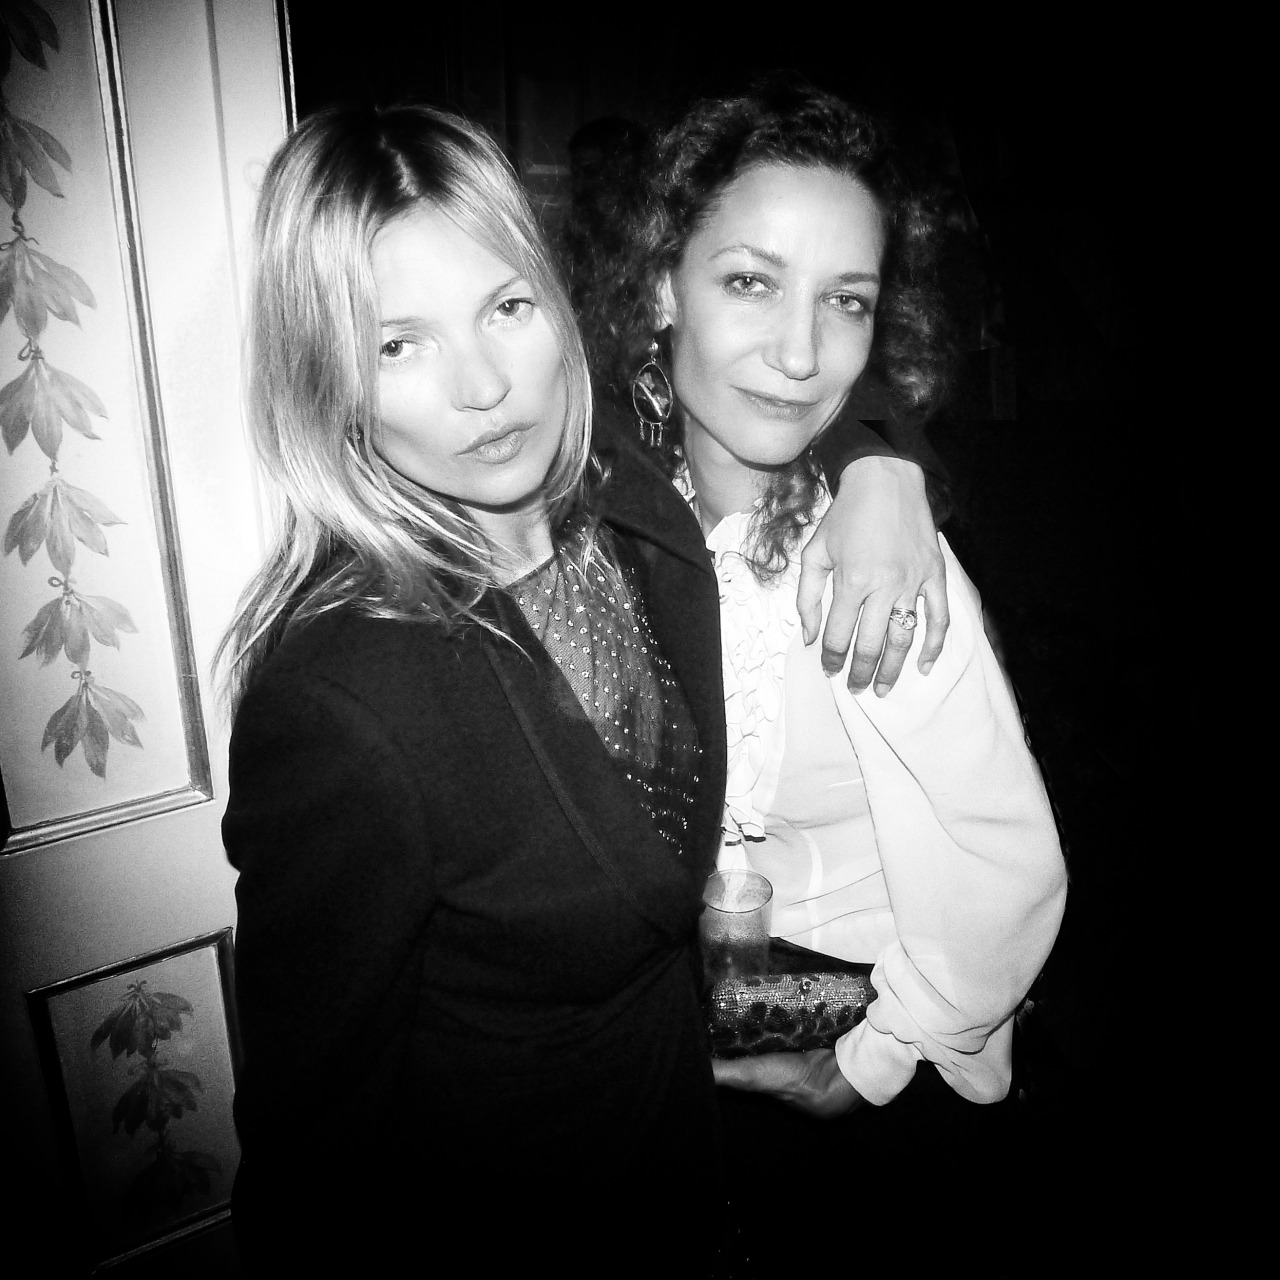 Kate Moss & Marpessa Hennink just few seconds before the famous kiss shot by me at Carine Roitfeld's party in Paris | photo credit: German Larkin